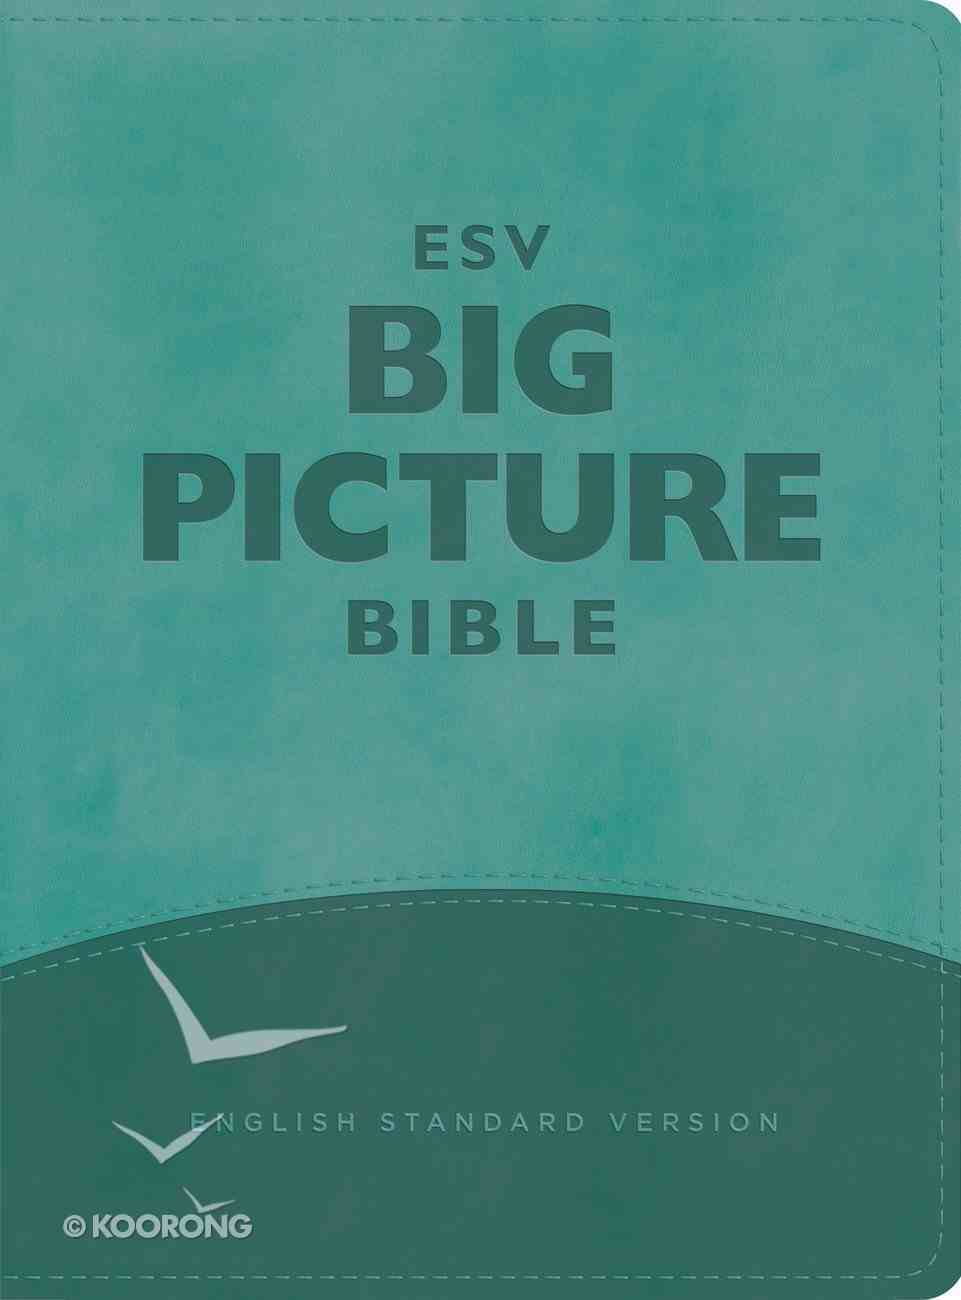 ESV Big Picture Bible Teal (Black Letter Edition) Imitation Leather